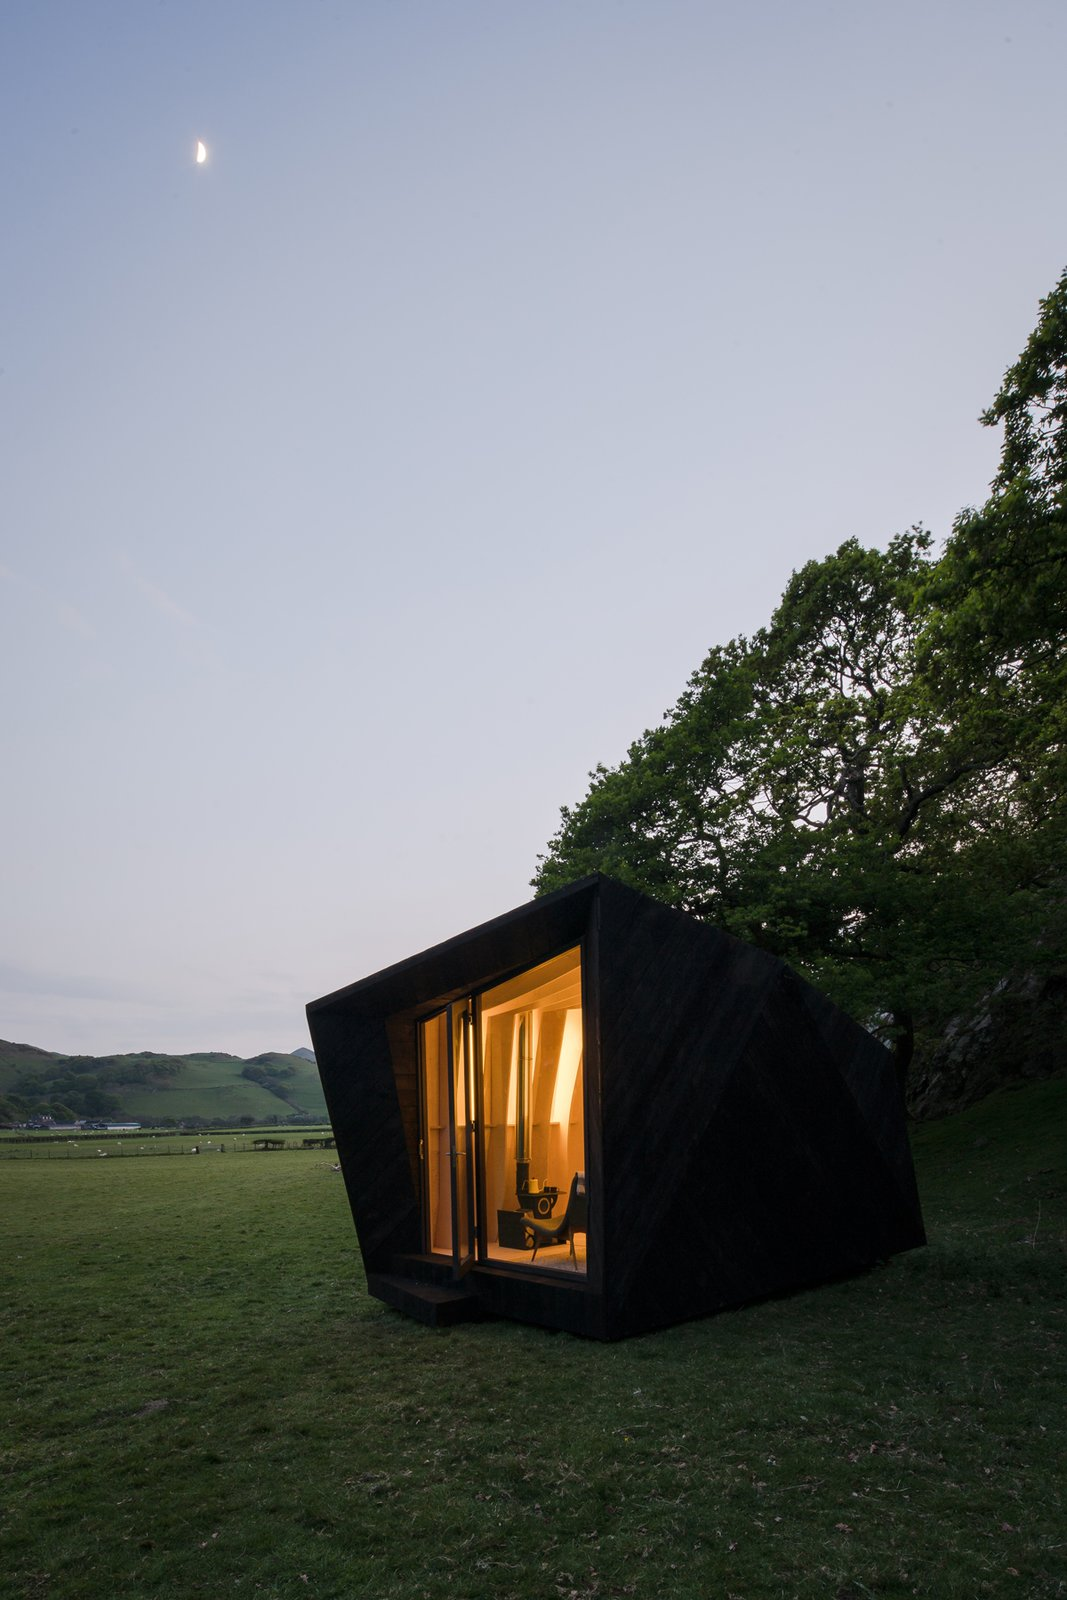 Photo 4 of 11 in Tour One of Epic Retreat's Tiny Pop-Up Hotel Cabins in the Welsh Countryside